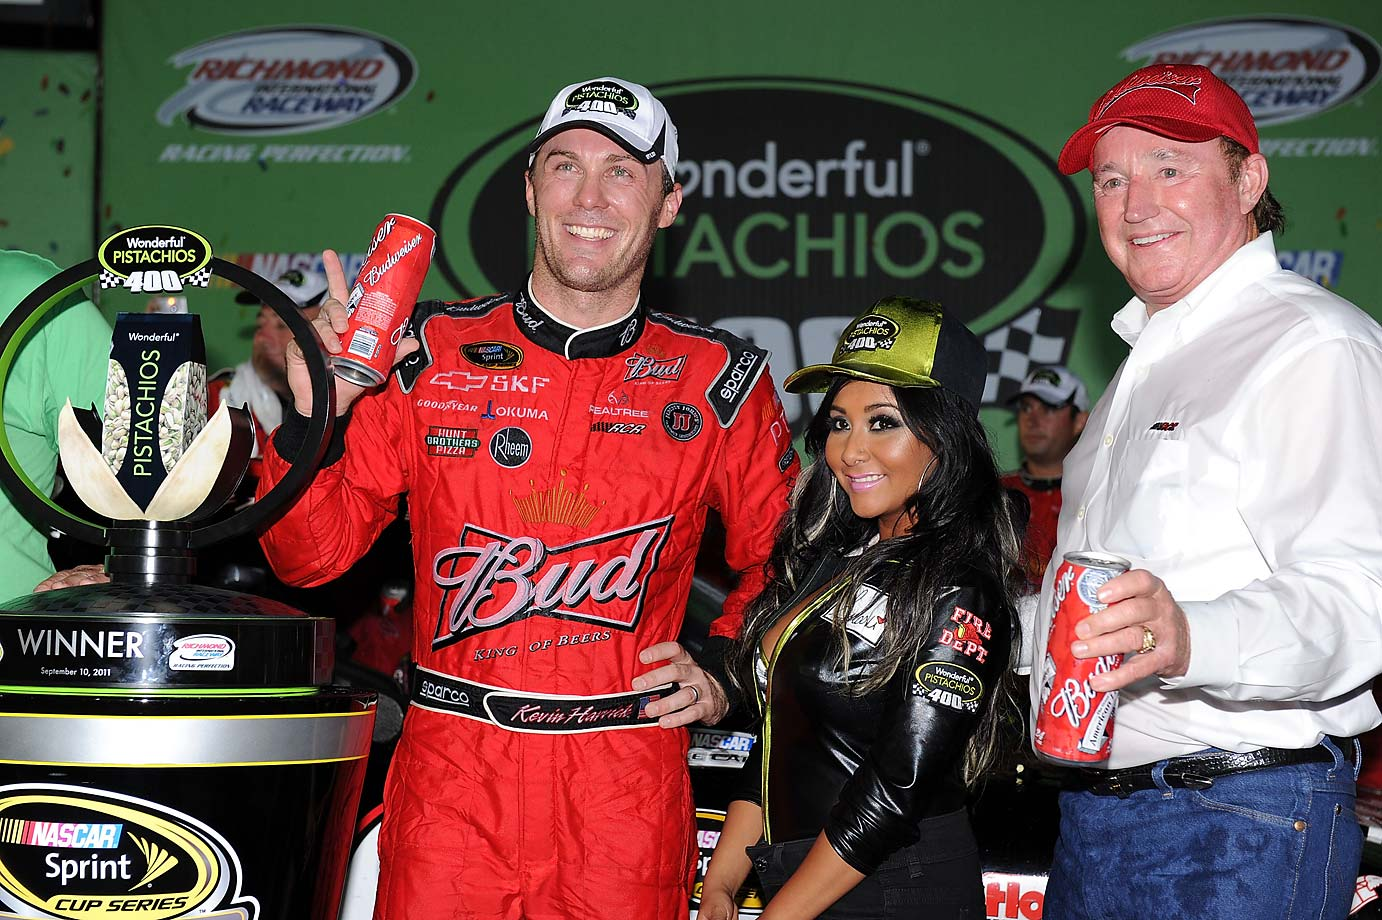 Kevin Harvick celebrates with TV personality Nicole 'Snookie' Polizzi and team owner Richard Childress after winning at Richmond on September 10, 2011.